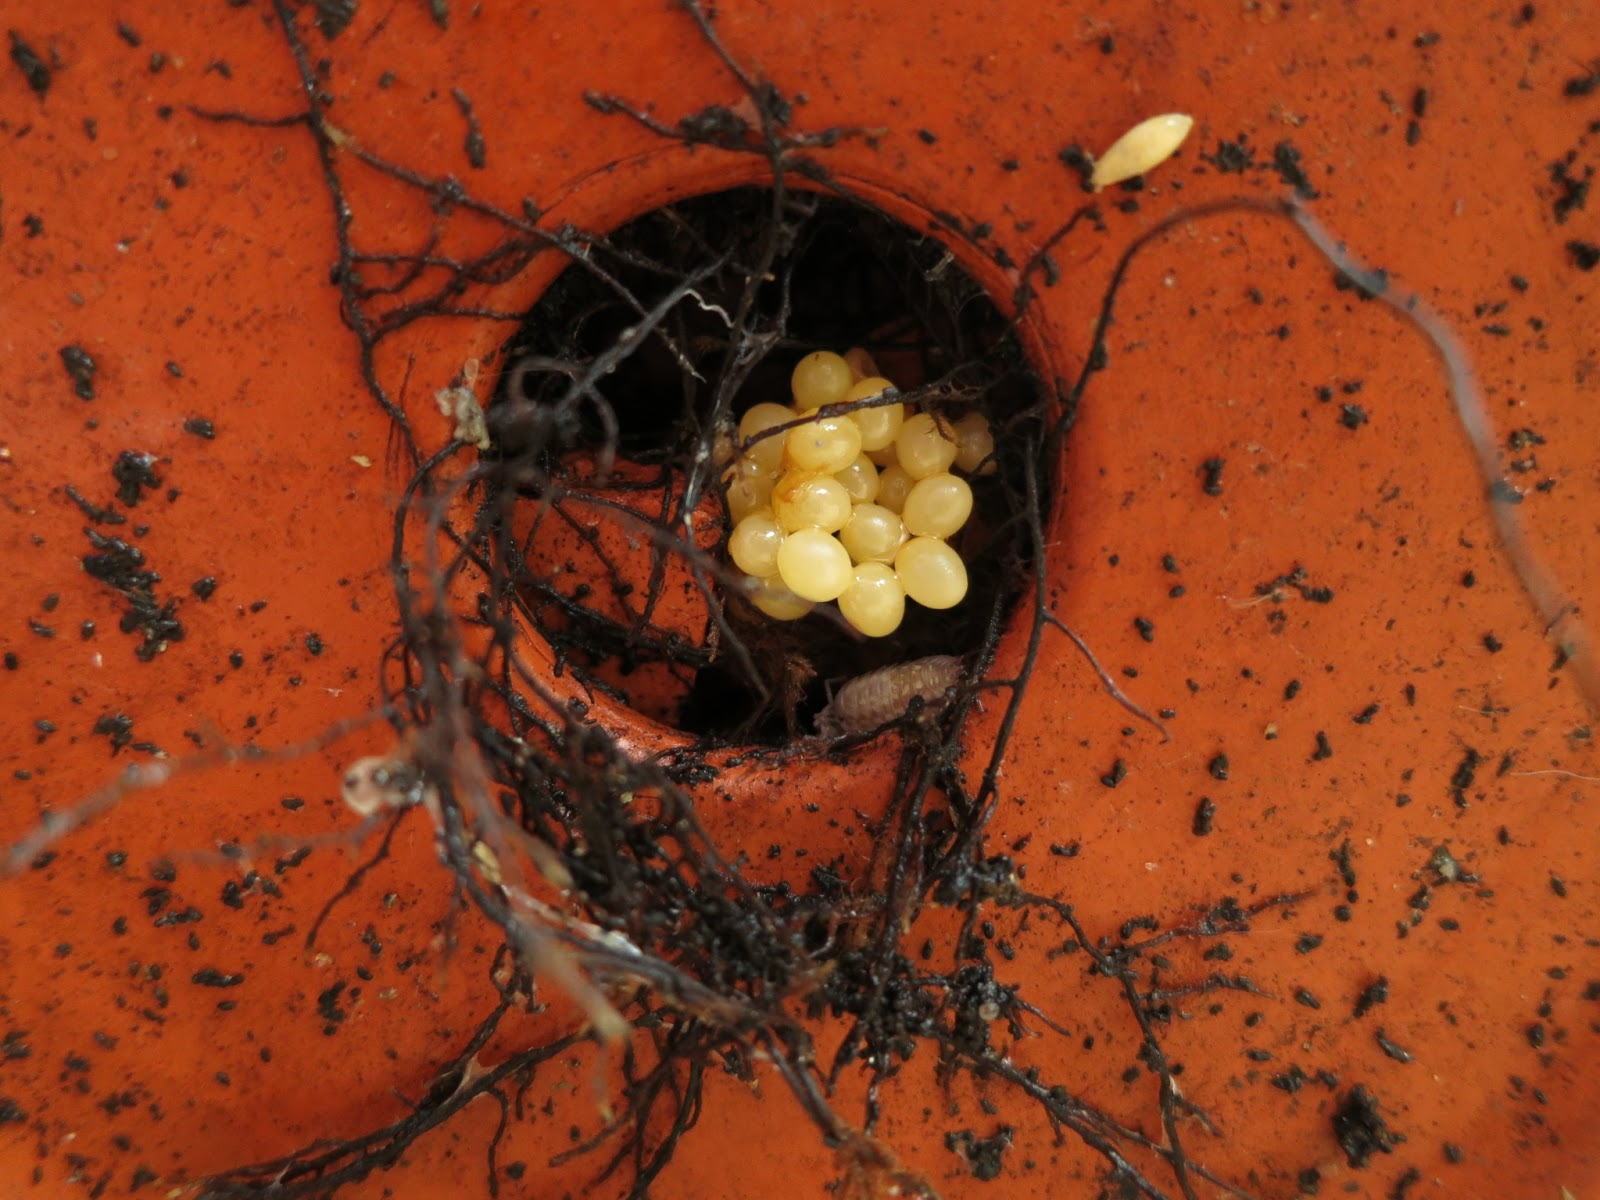 Eggs of slugs or snails in the base of a terracotta pot with woodlouse